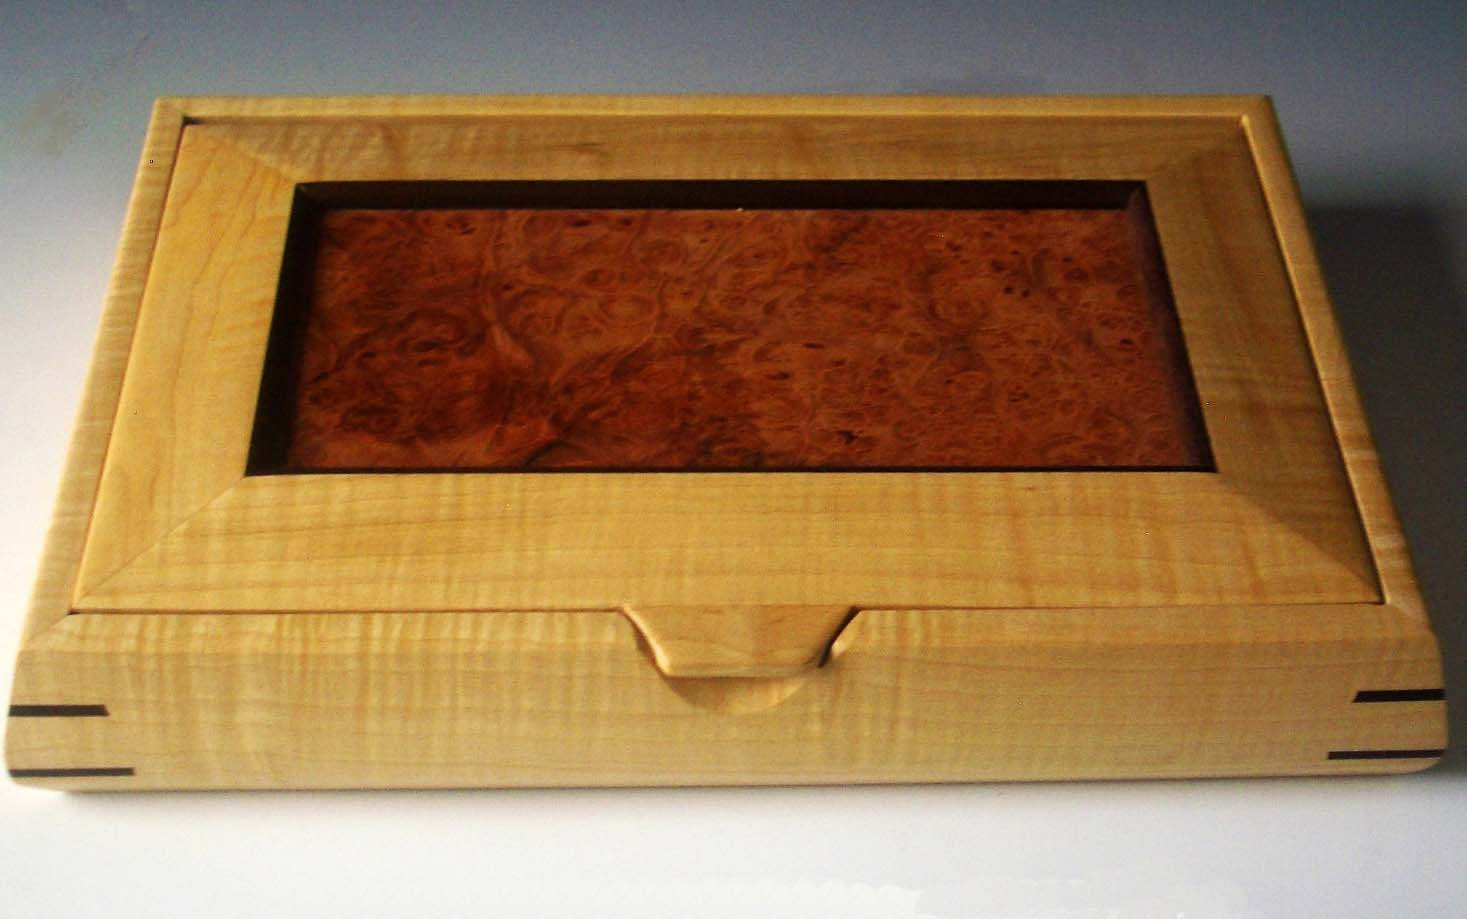 Handcrafted wooden box made of curly maple and a maple burl lid